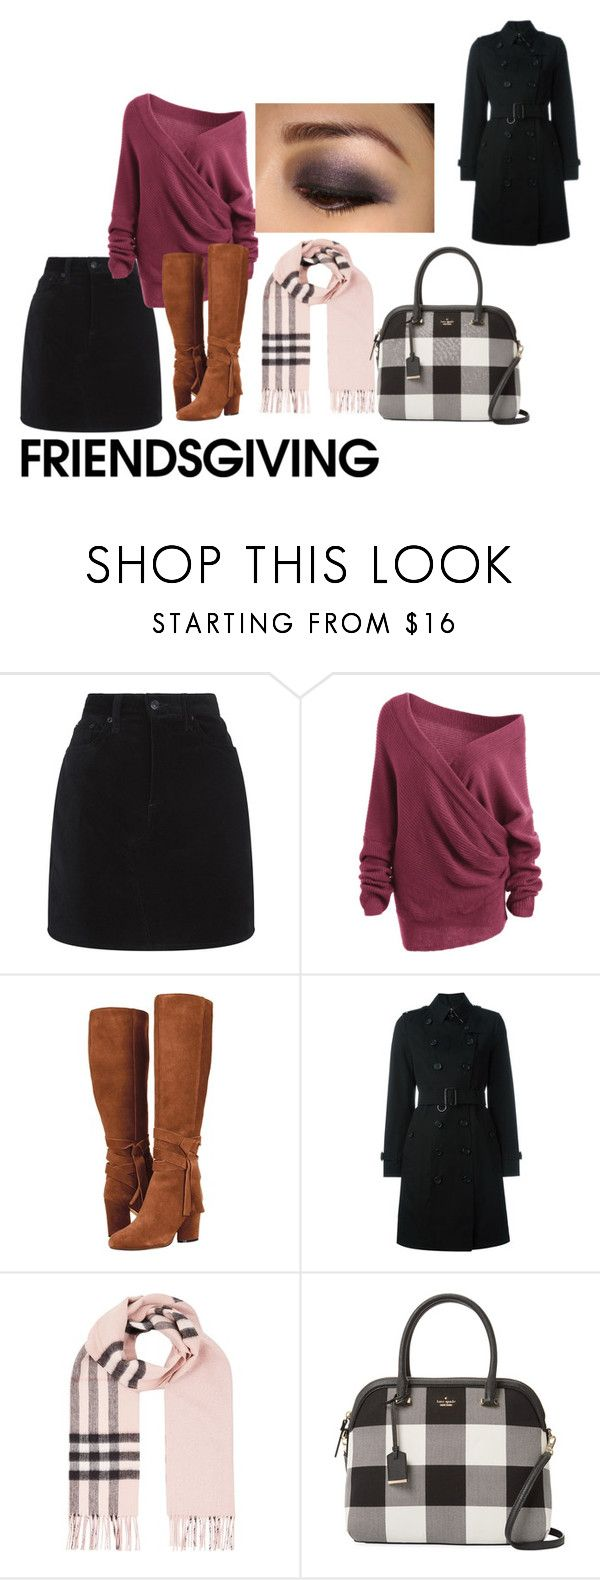 """Untitled #332"" by alex-reid-faulkner ❤ liked on Polyvore featuring rag & bone, Burberry and Kate Spade"